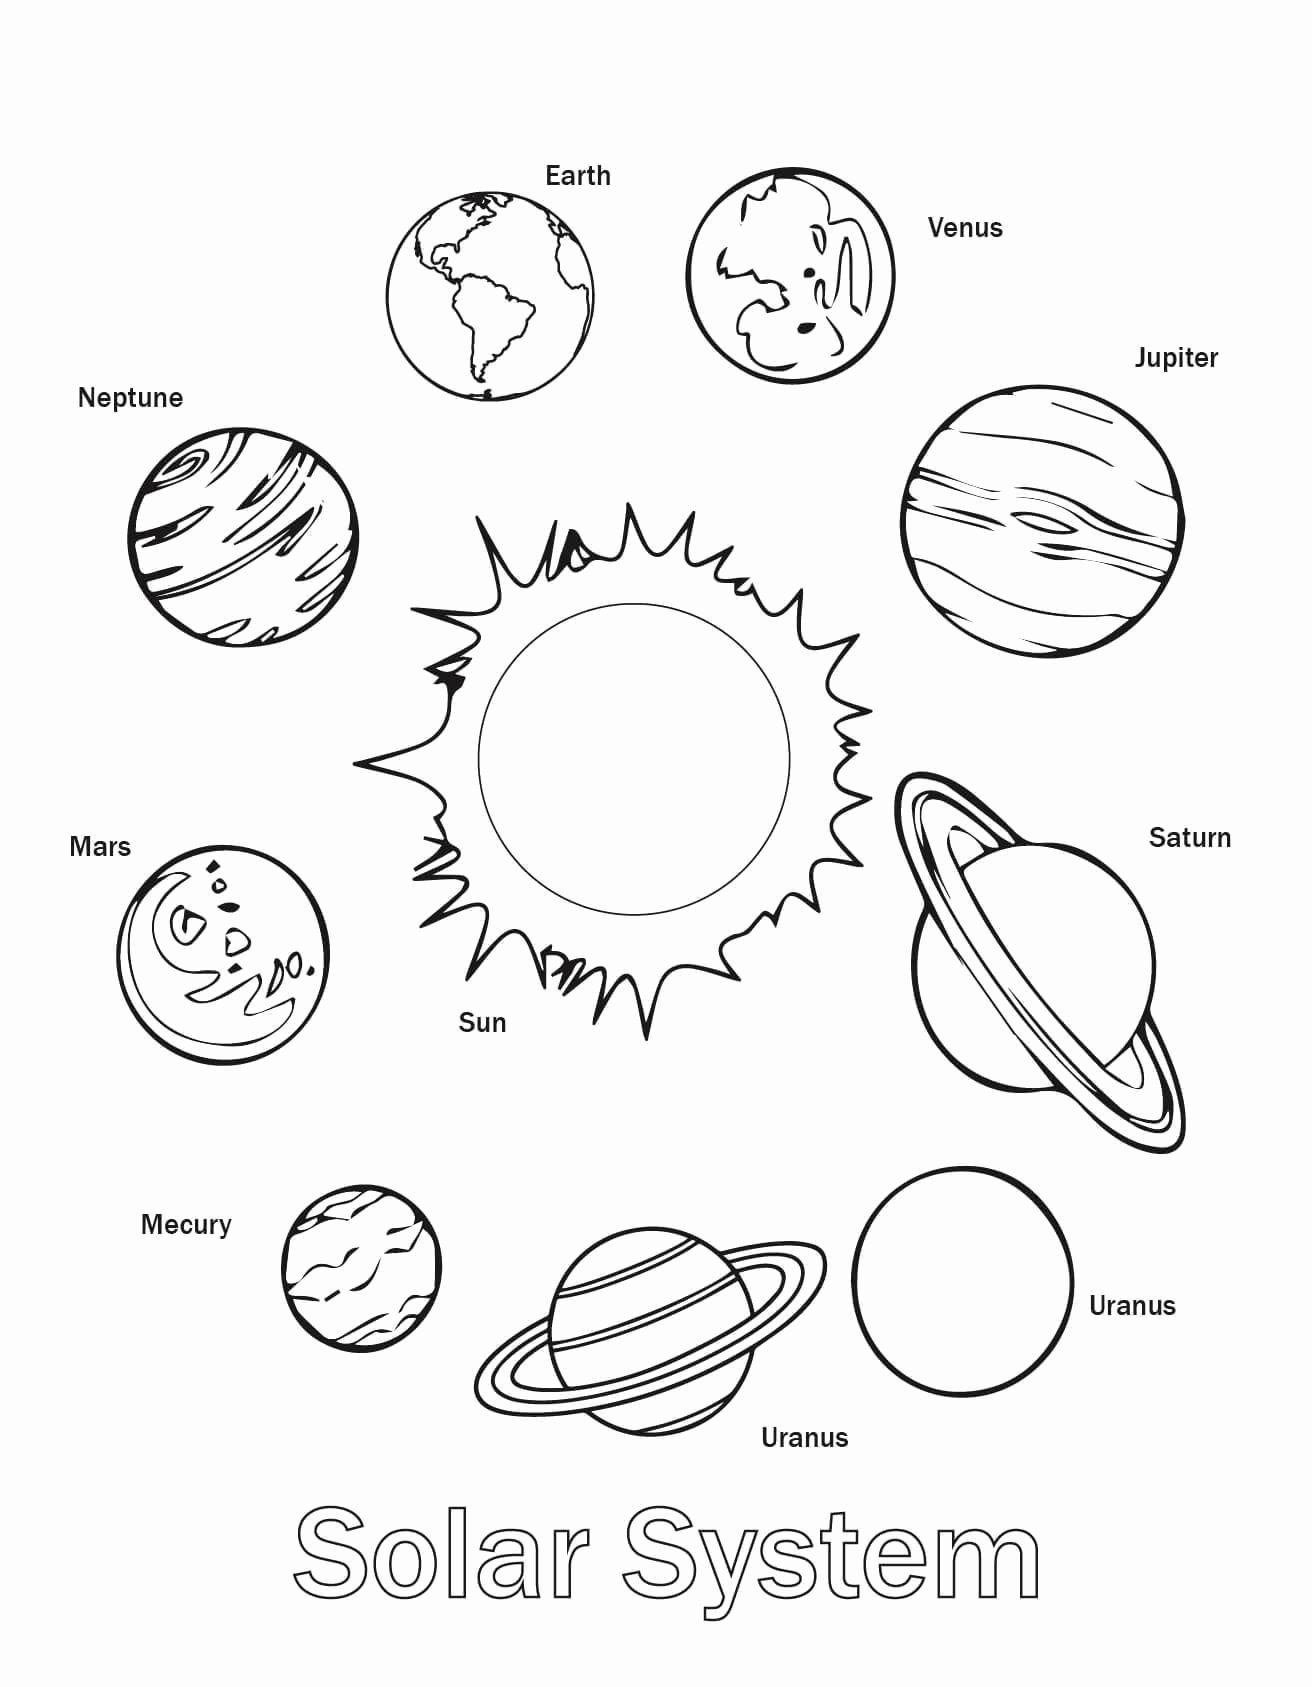 Color Black Worksheets for Preschoolers Awesome Free Printable solar System Coloring for Kids Color Black